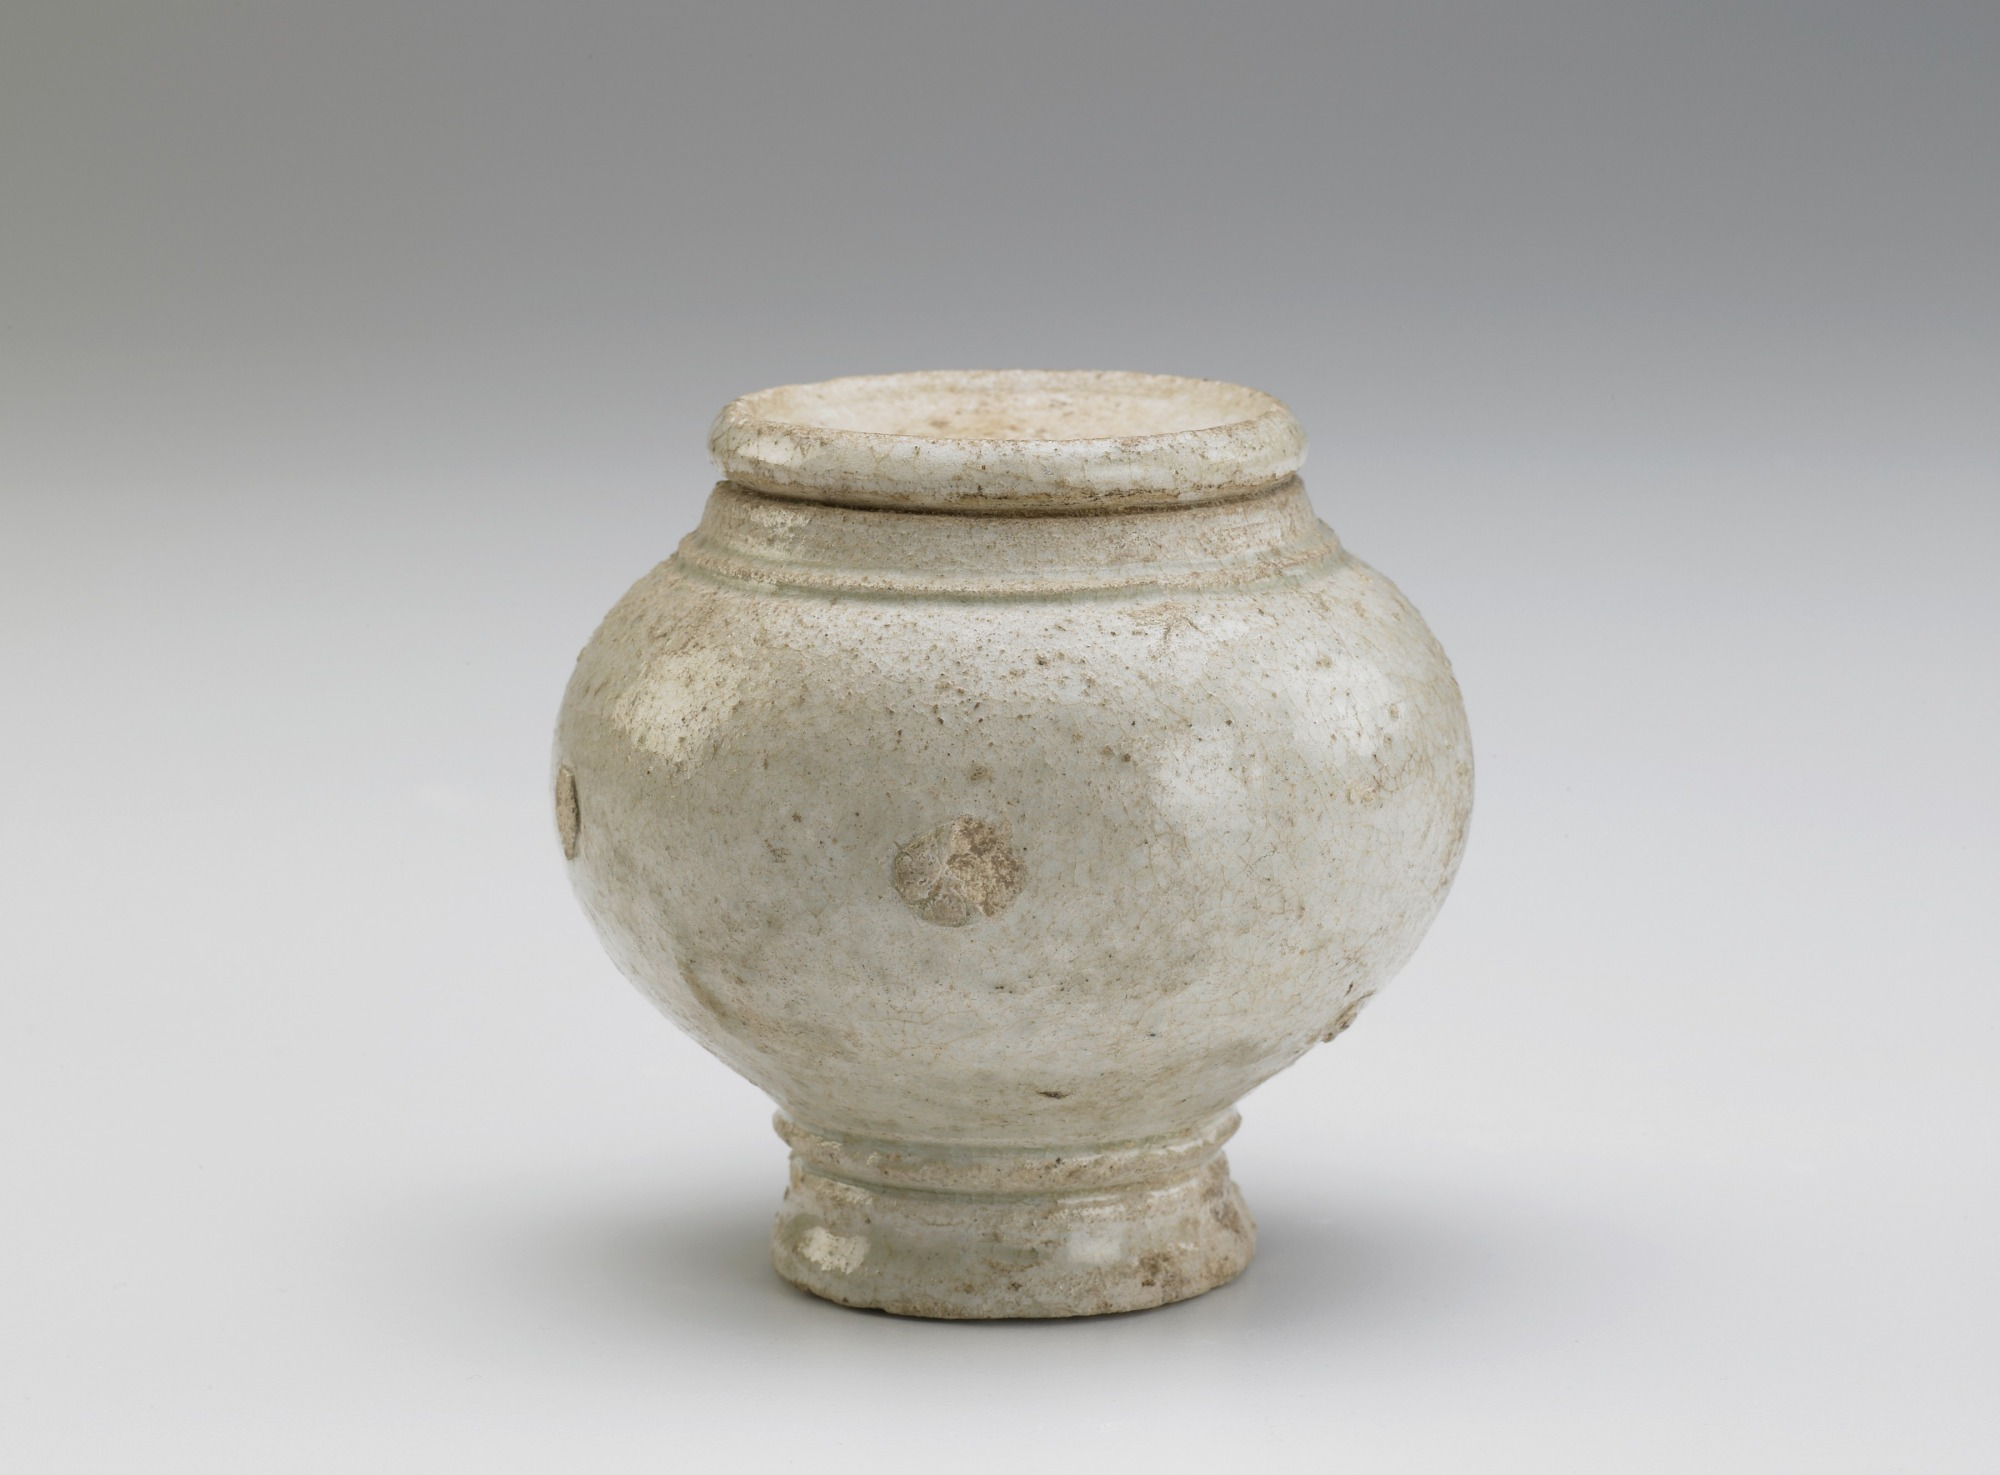 : Jar with attached rim (pastiche)